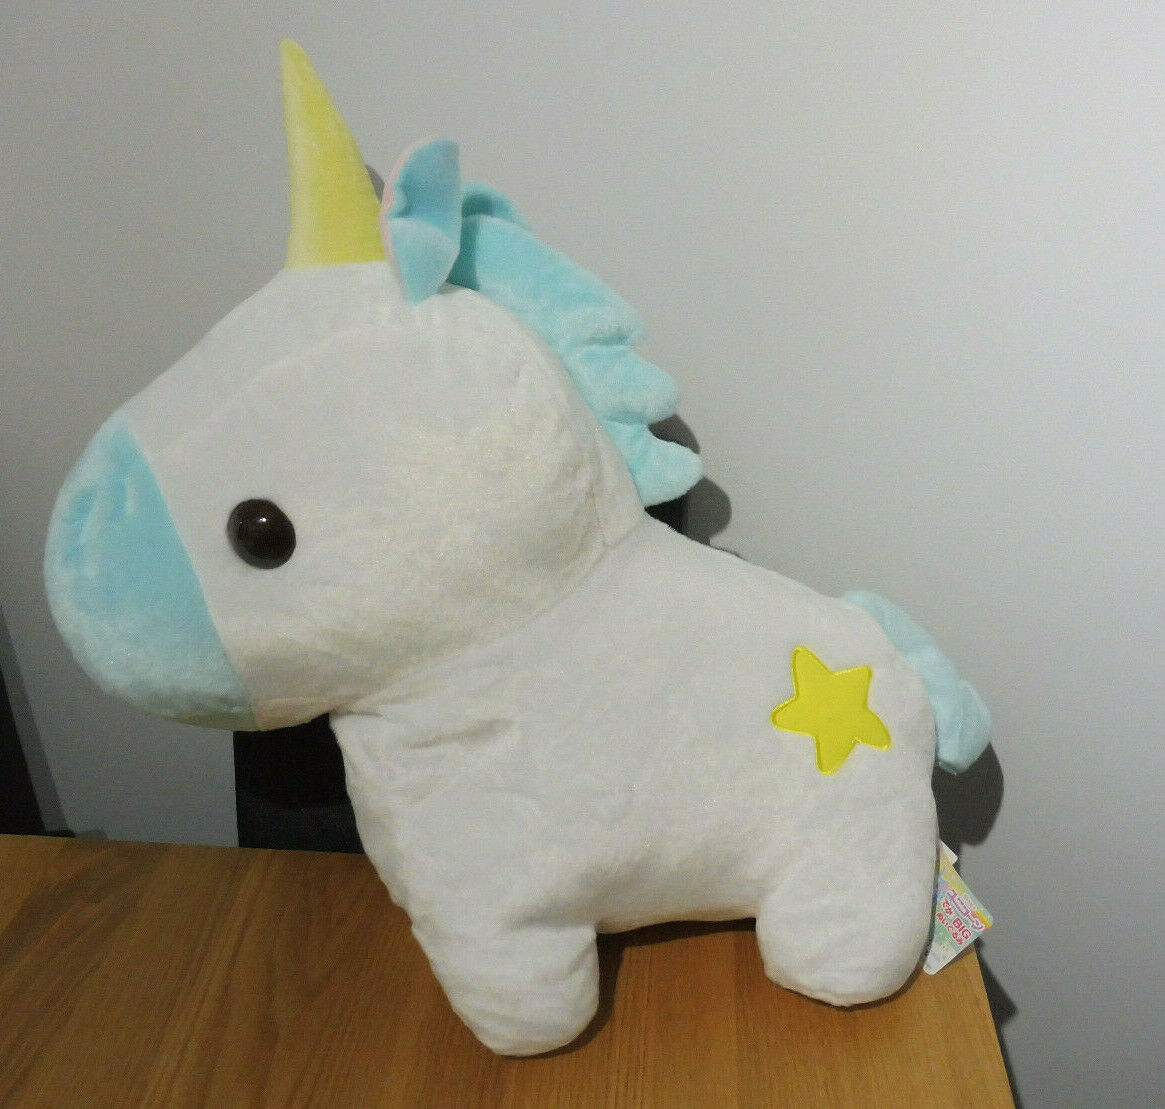 YUMEKAWA UNICORN HUGE PLUSH 70 CM 27 INCHES (TOREBA)